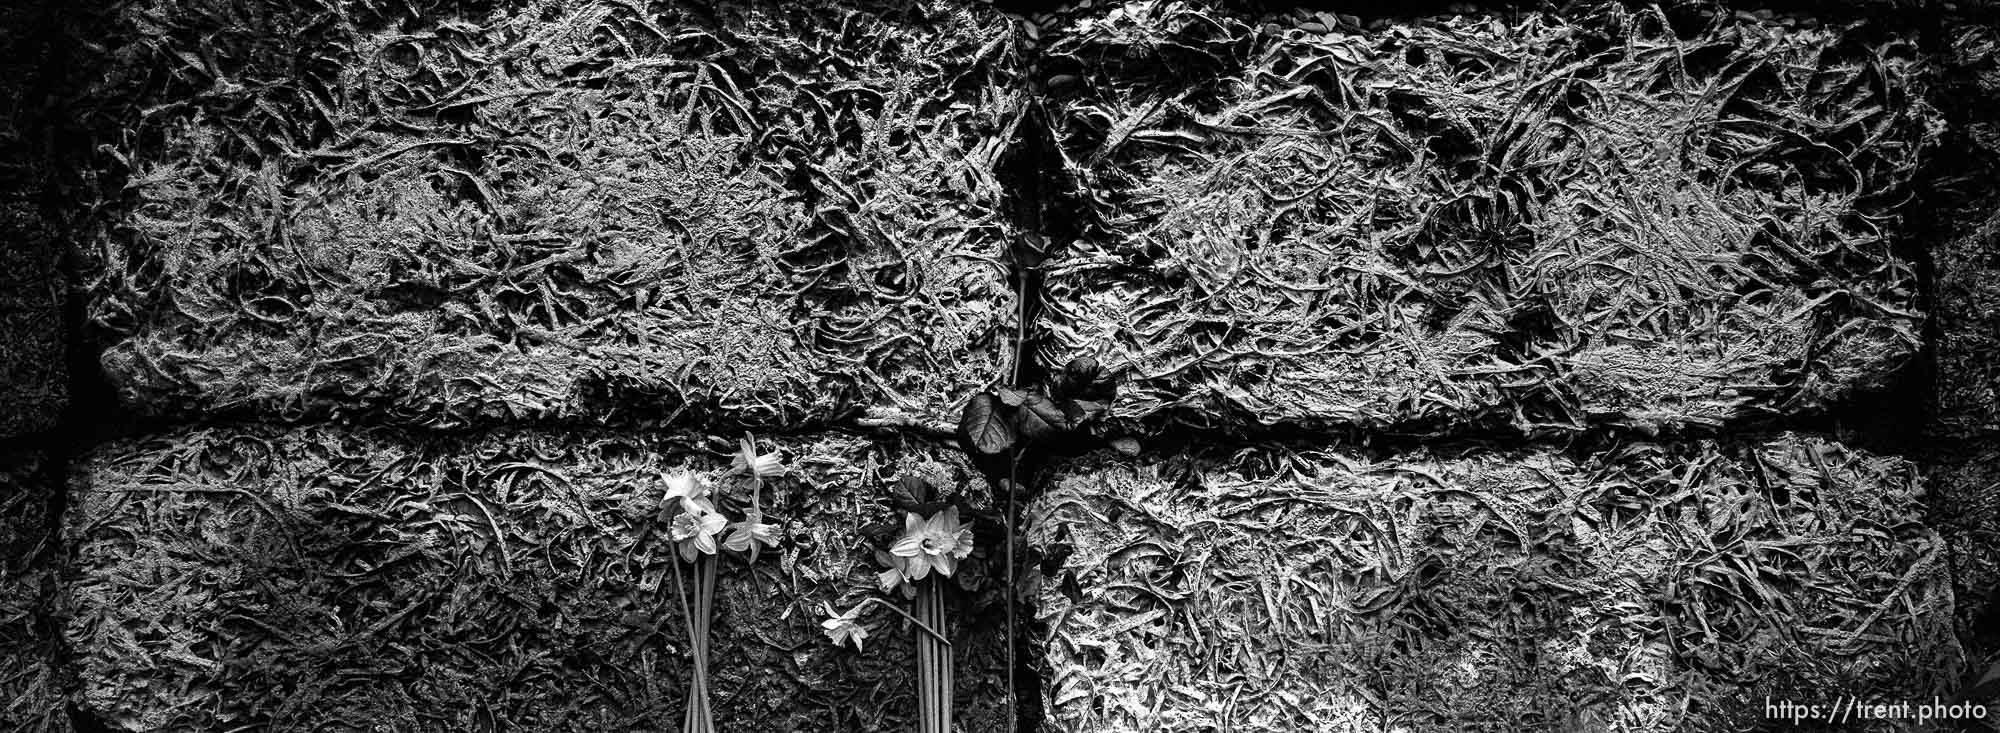 Detail of the Wall of Death at the Auschwitz Concentration Camp.